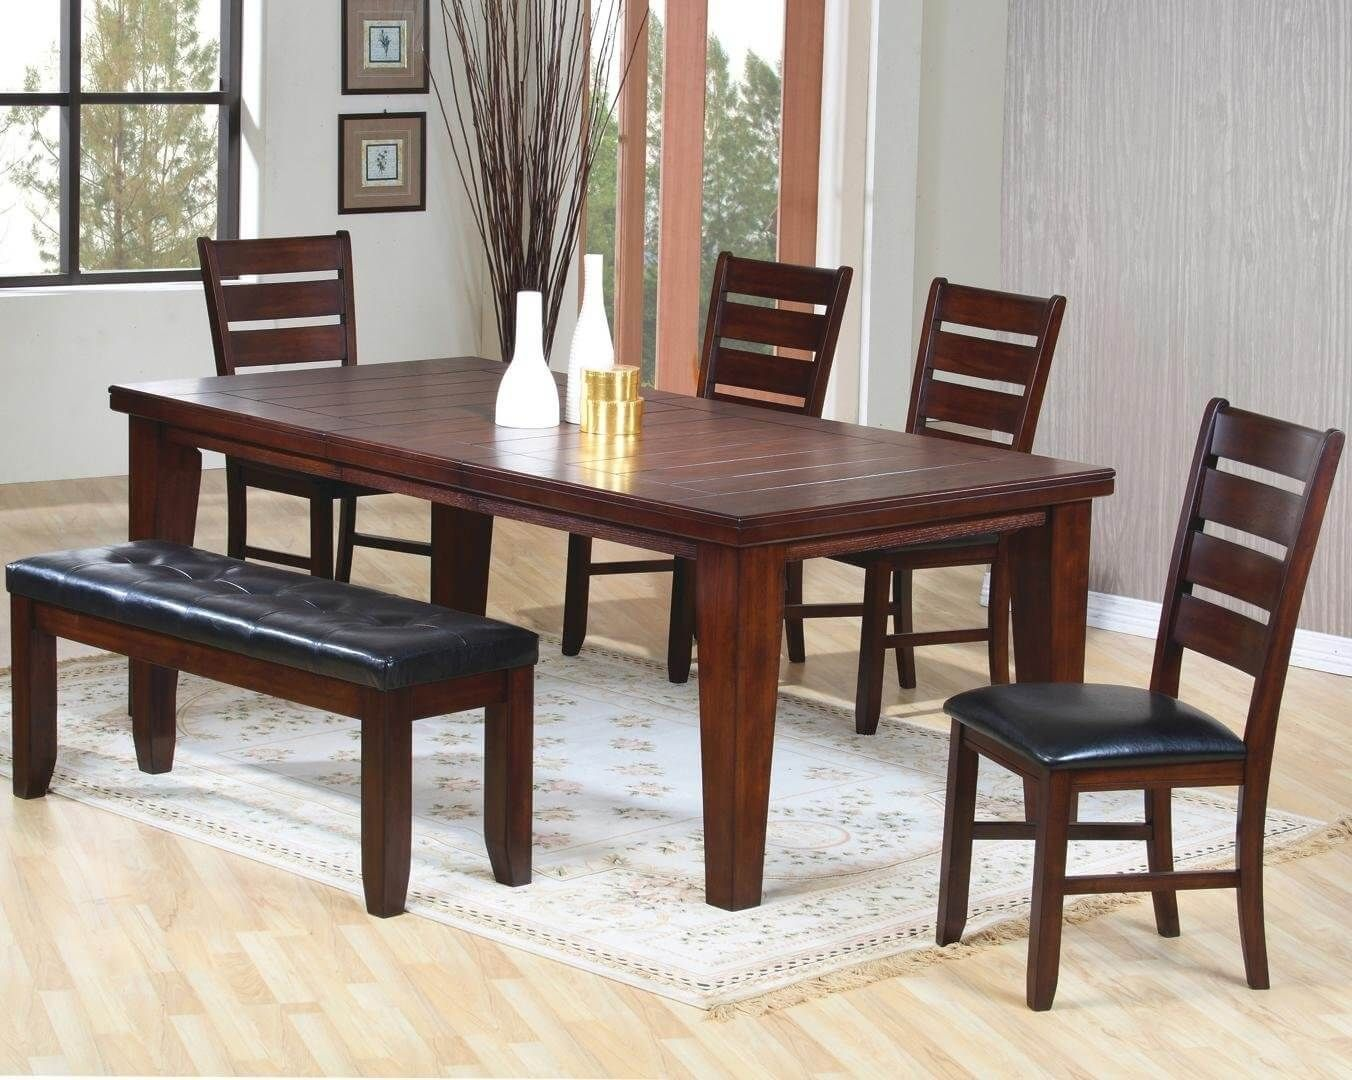 Dining Room Sets With Chairs And Bench